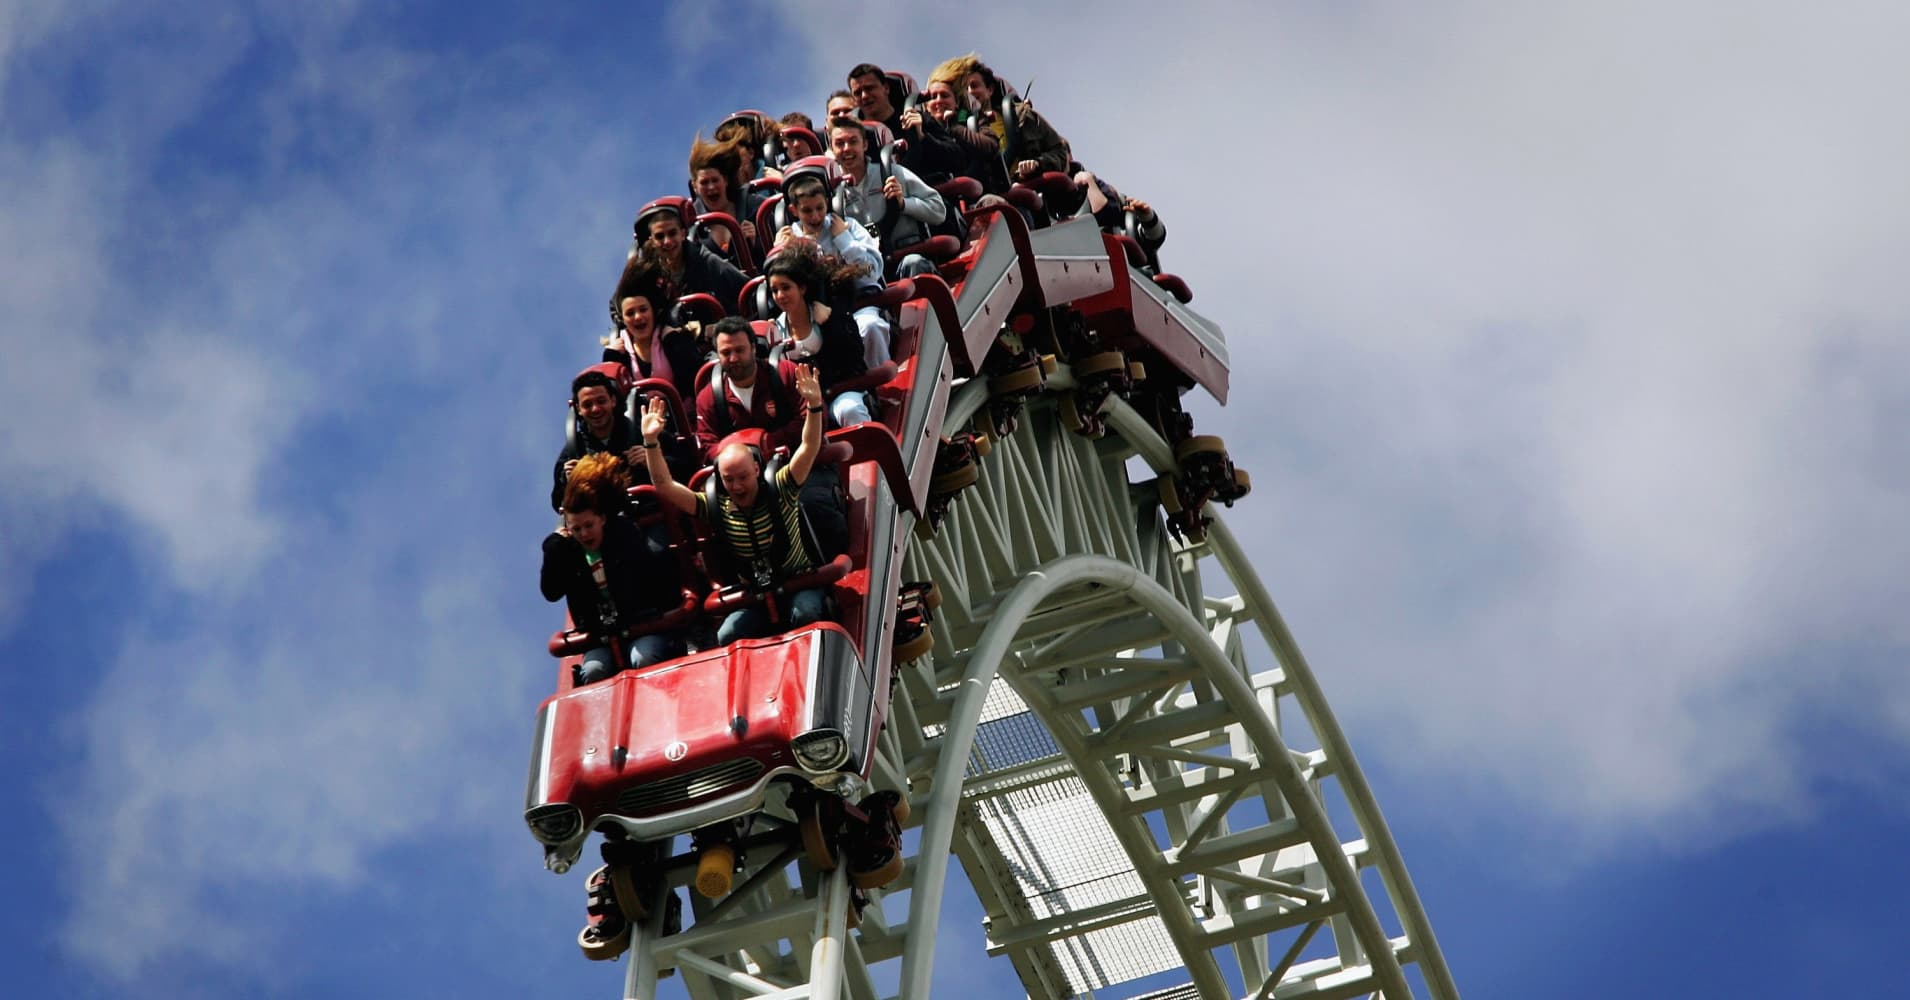 The stock market's all-time highs are behind it, Invesco warns